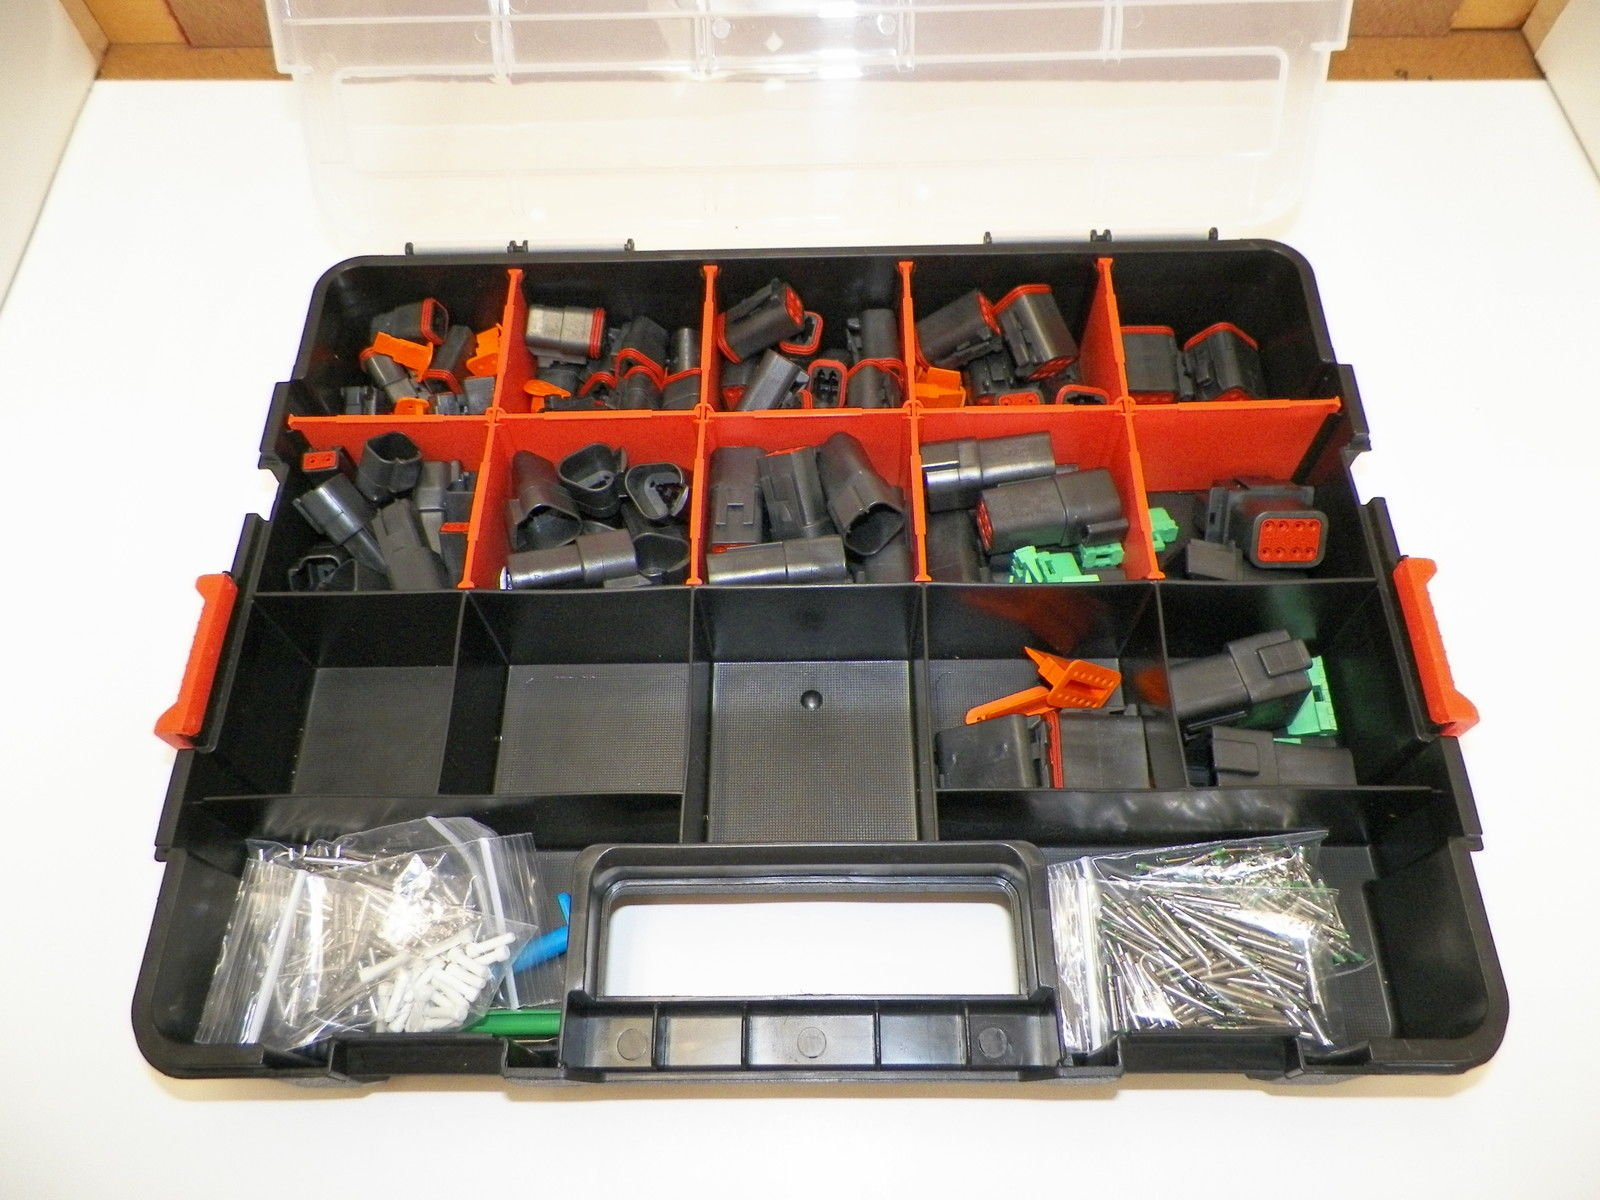 DEUTSCH DT CONNECTOR KIT BLACK OEM 518 Piece Kit STAMPED TERMINALS + REMOVAL TOOLS, MALE & FEMALE